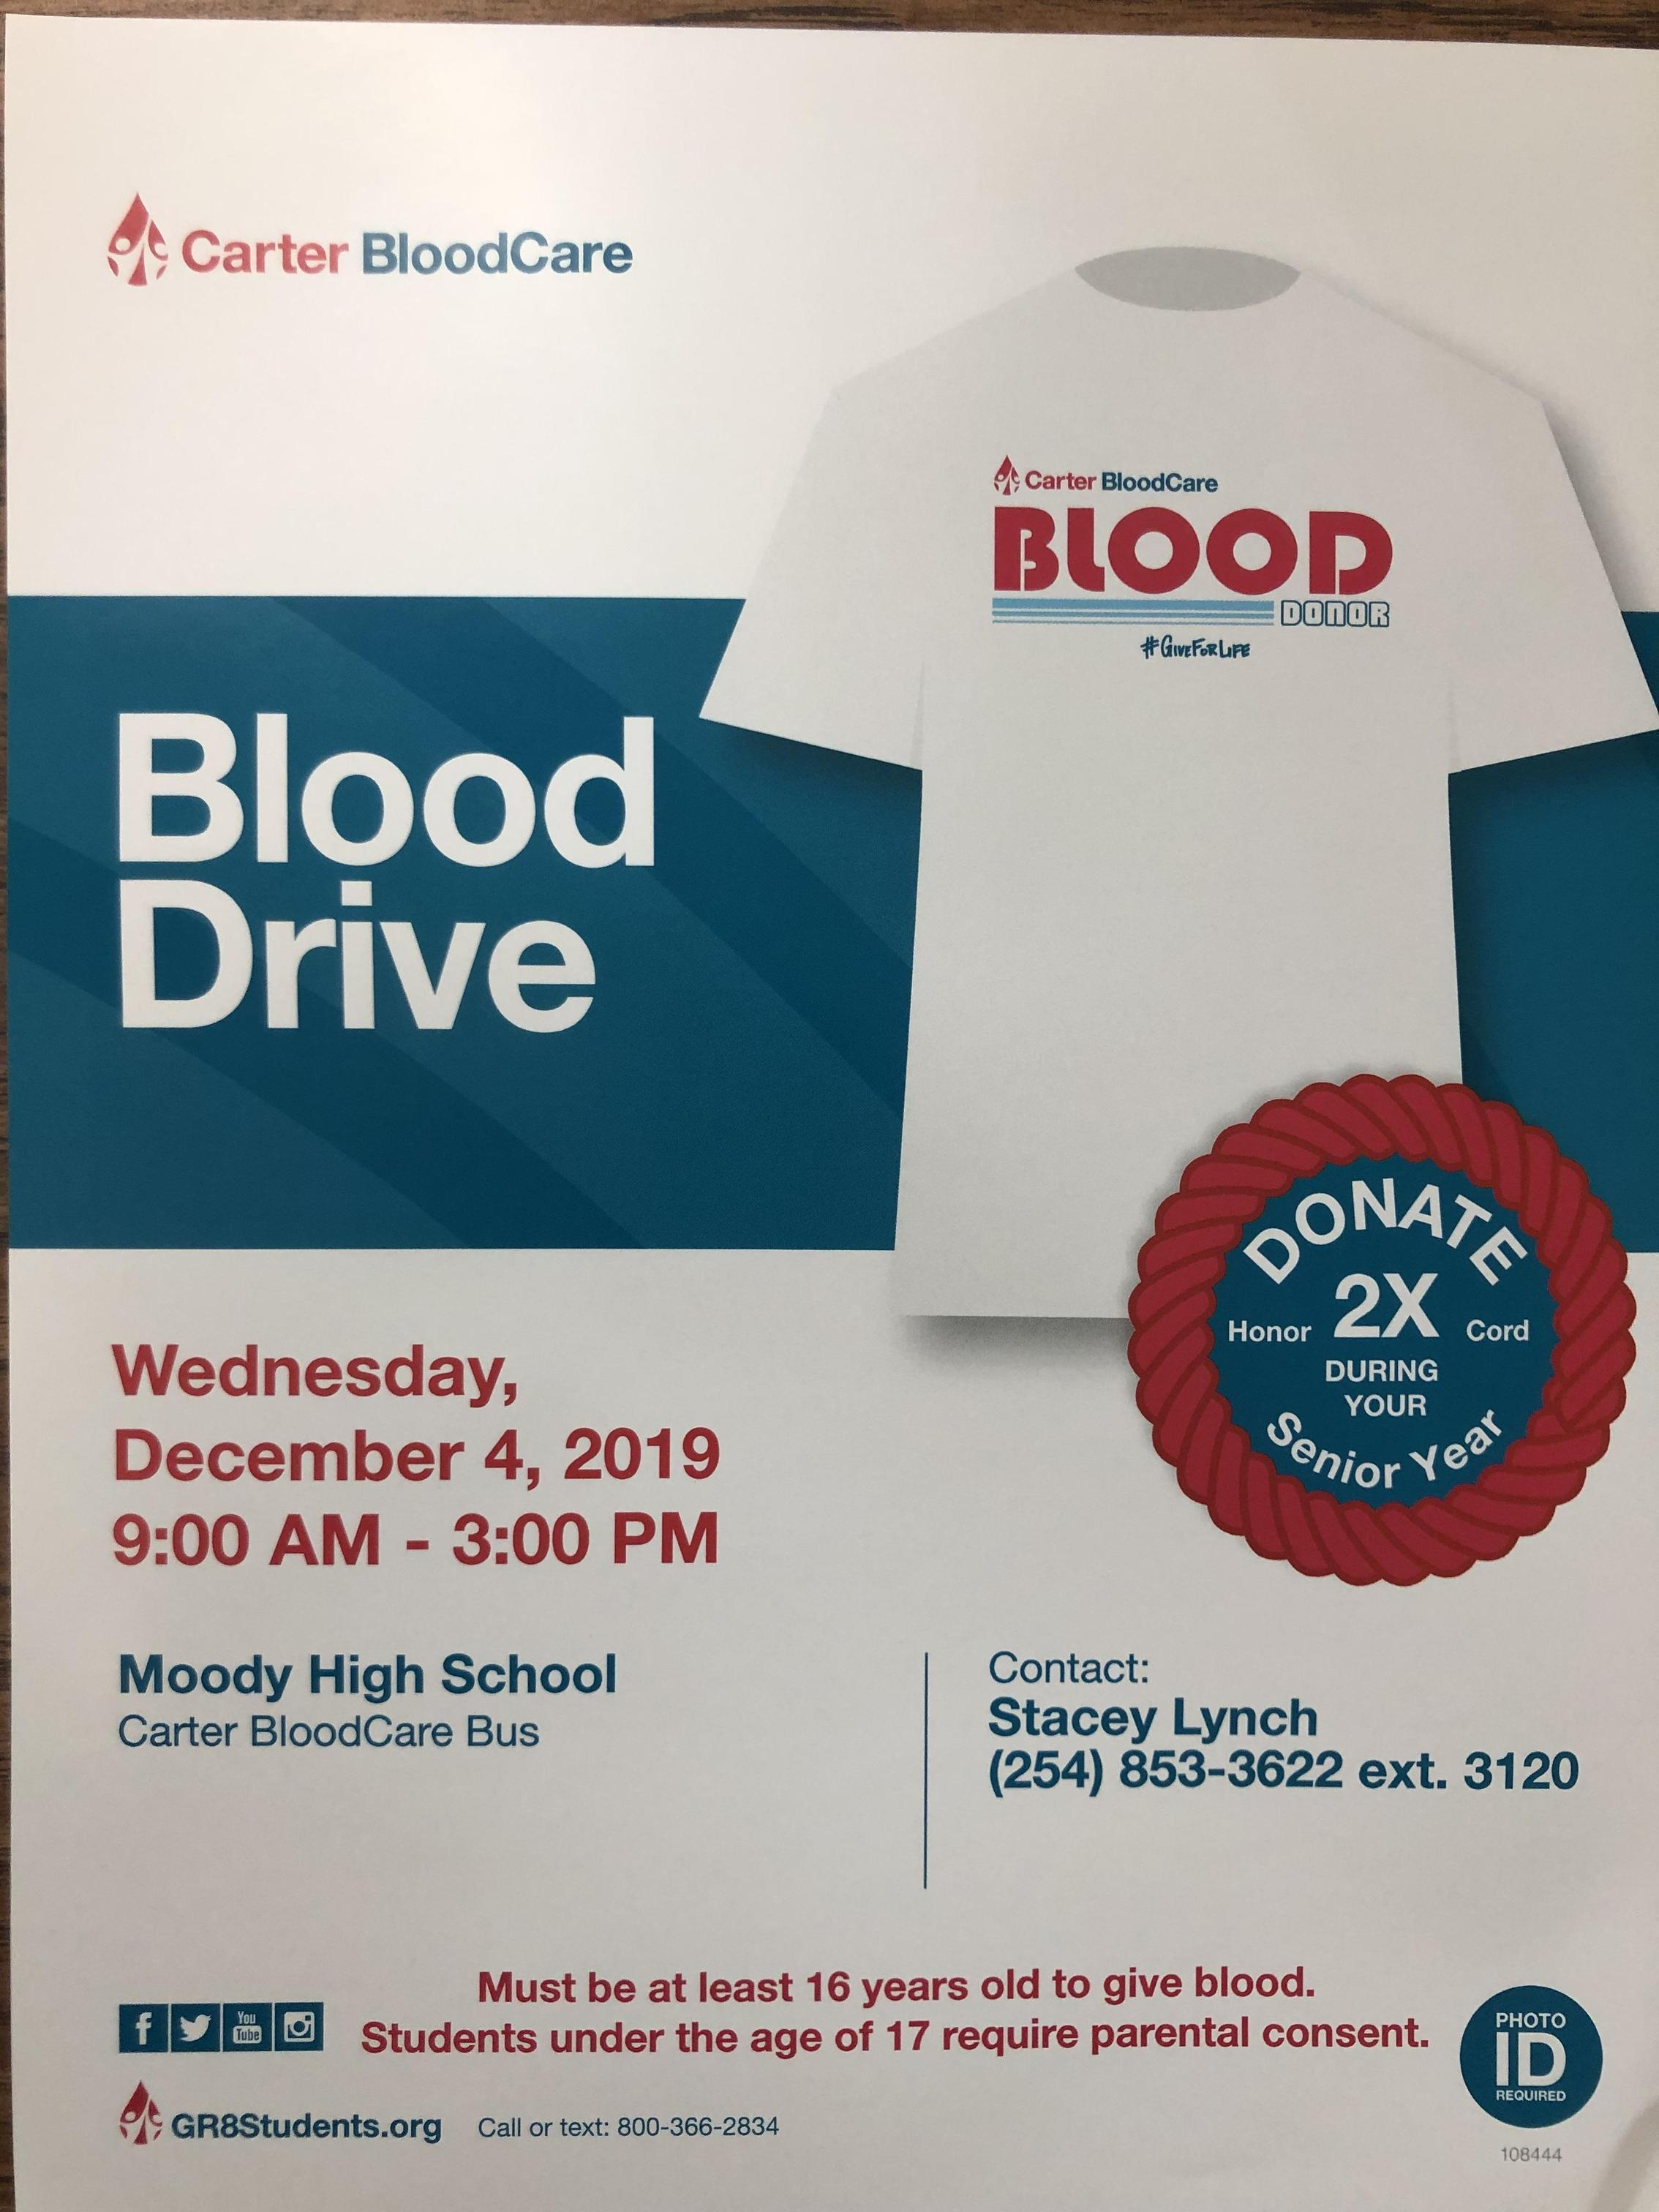 Blood Drive December 4th at Moody High School from 9 am-3 pm